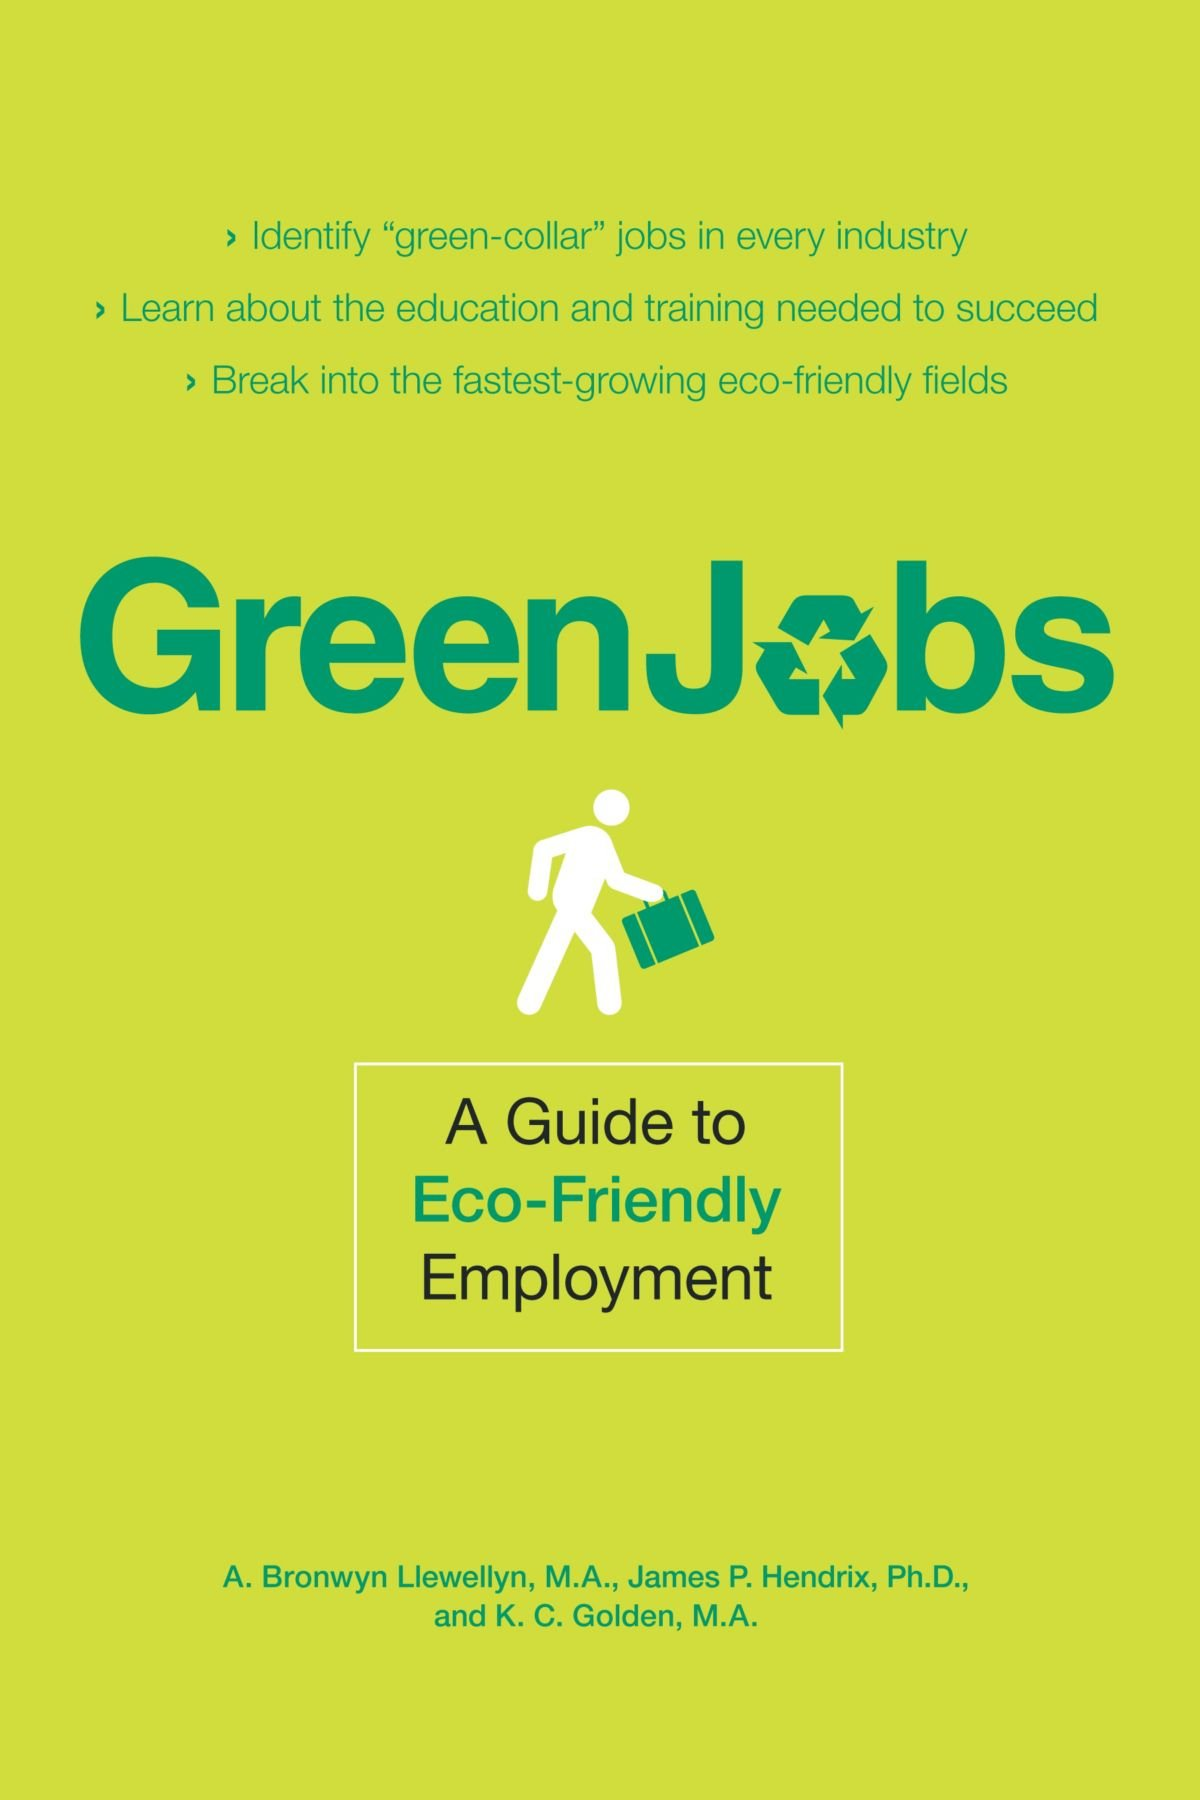 Green Jobs - A Guide to Eco-Friendly Employment